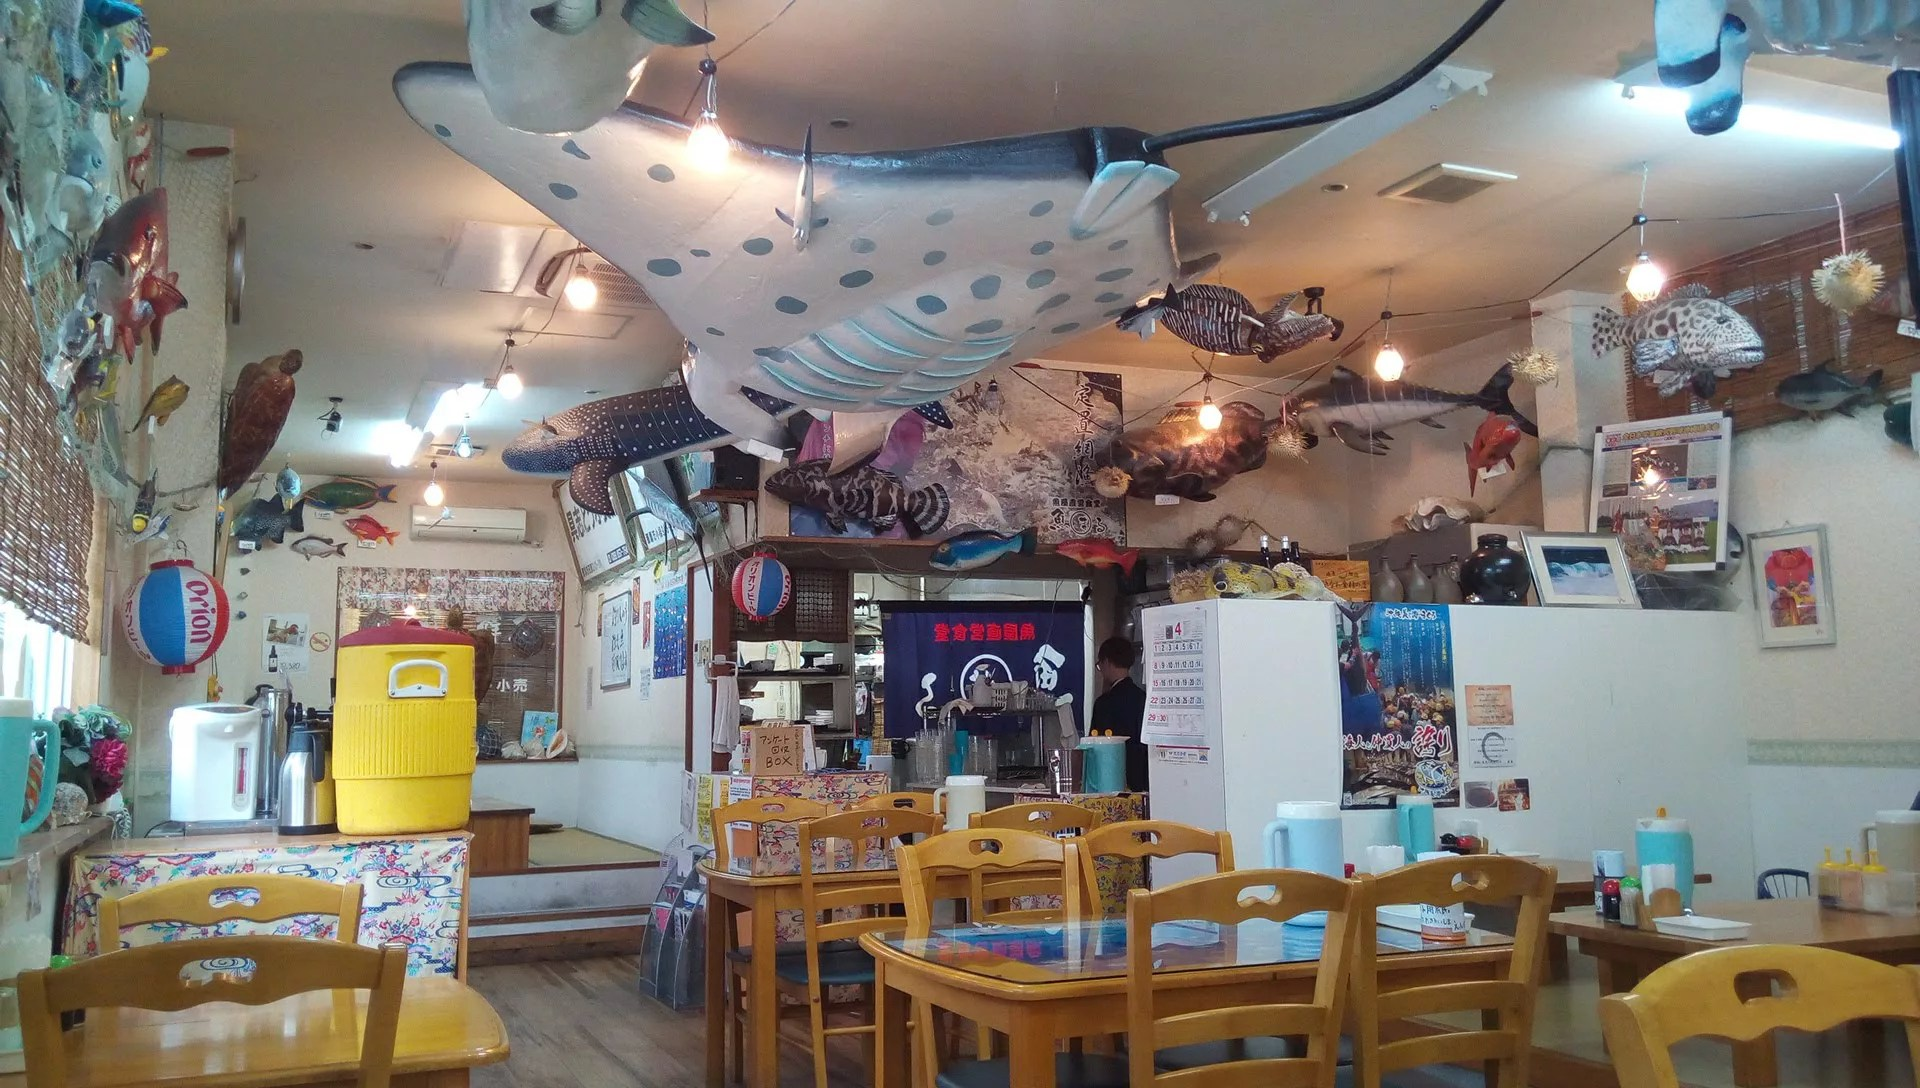 The inside of the shop is decorated with a lot of fish models